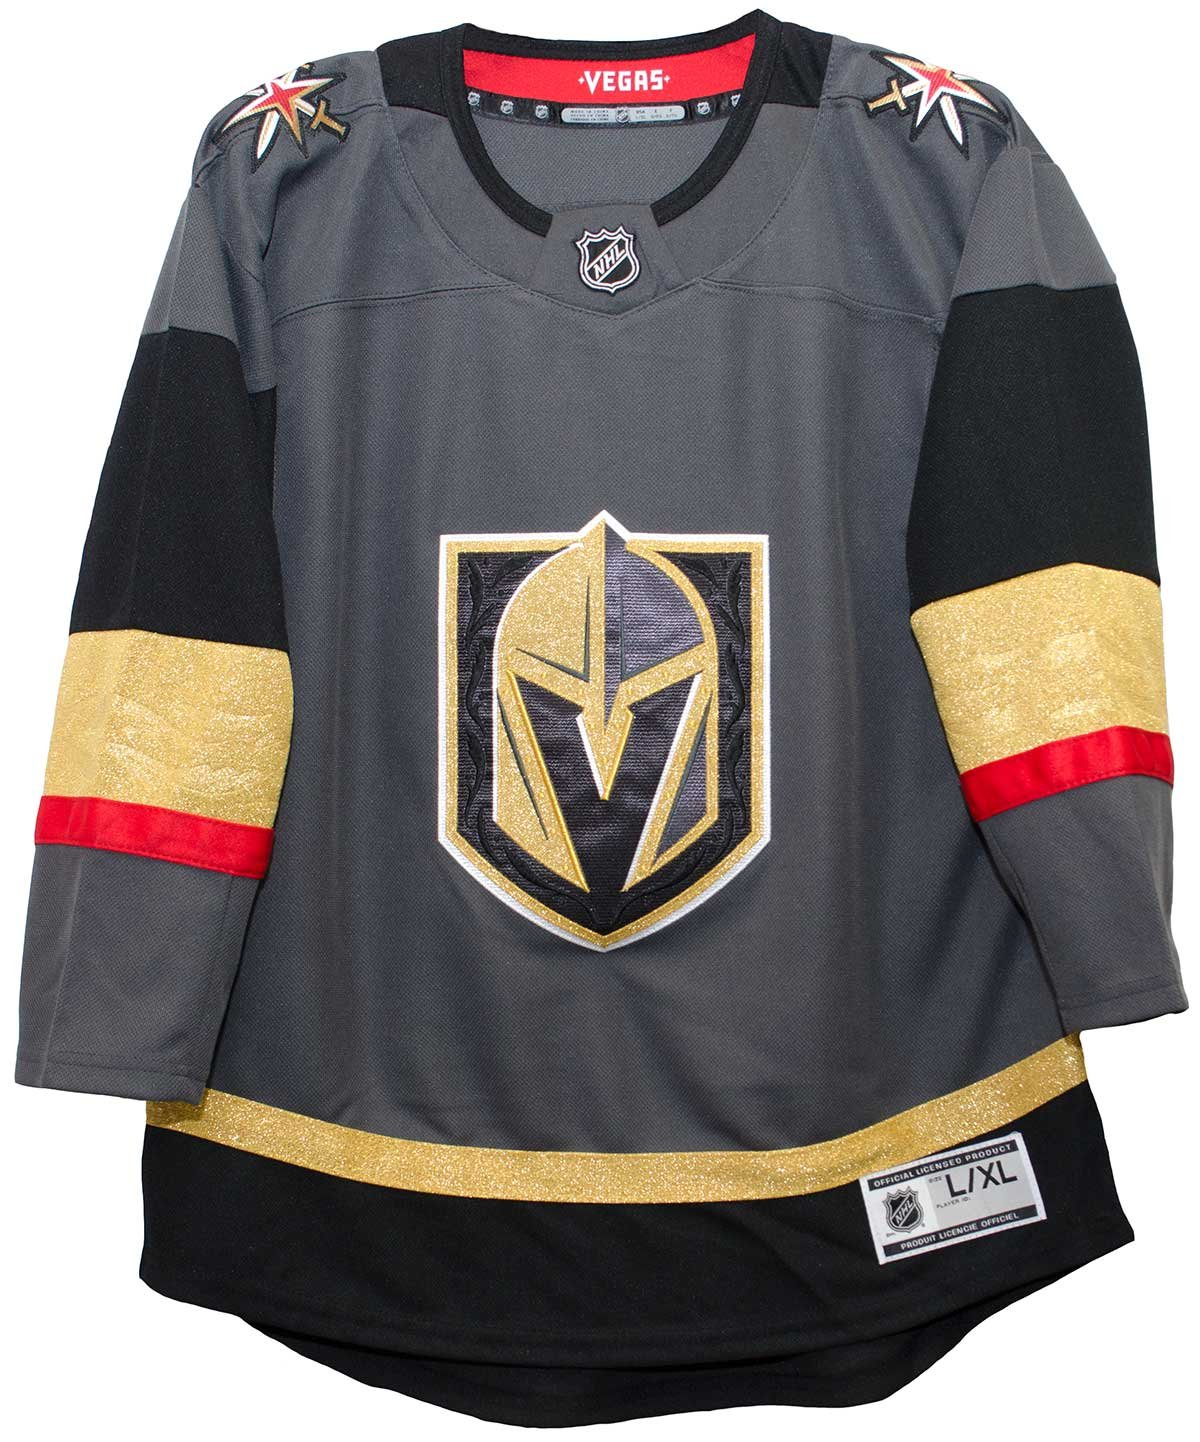 low priced 1e859 56b9a Outerstuff Vegas Golden Knights Youth Premier Home Jersey (Youth Size)